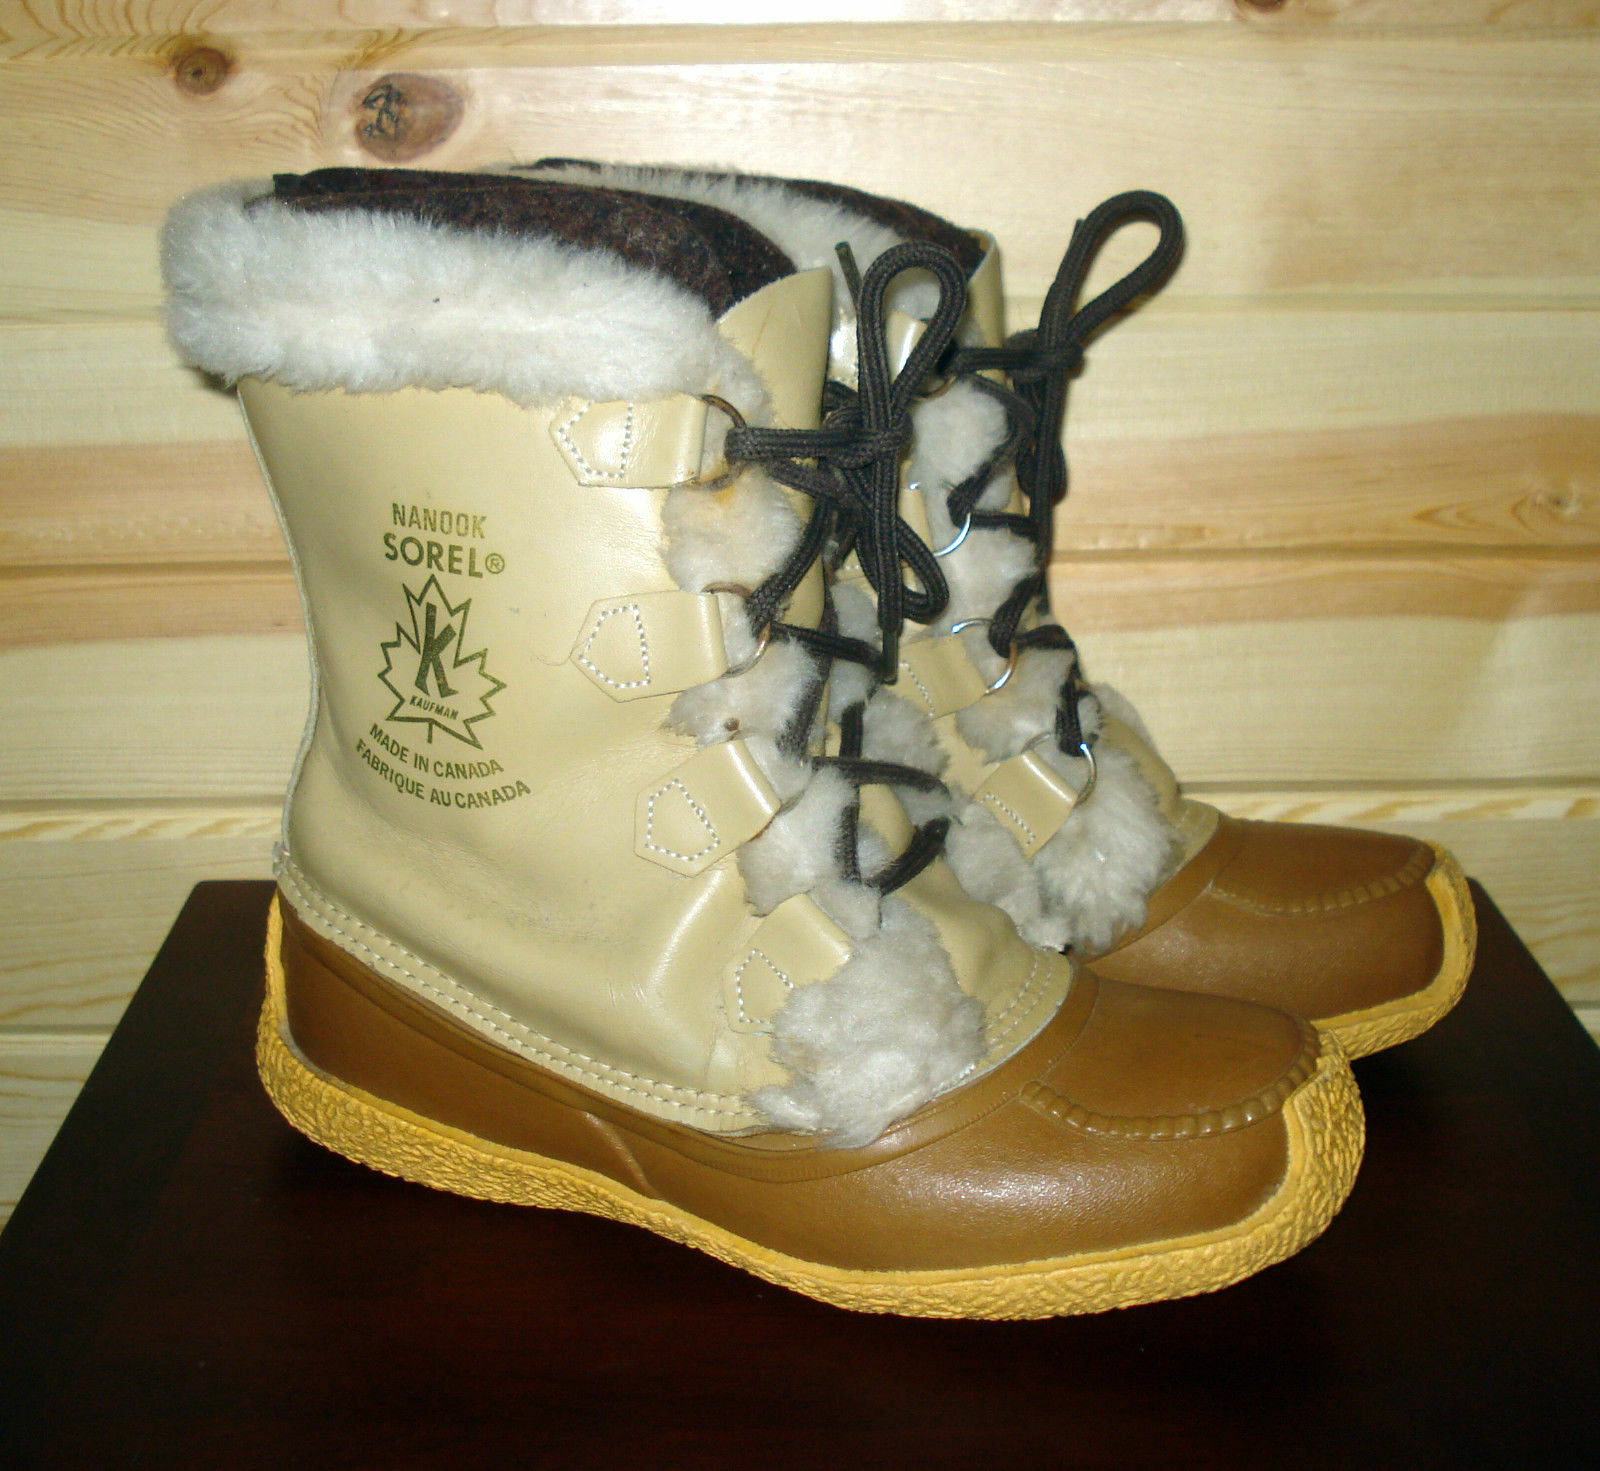 SOREL NANOOK Donna Insolated 10